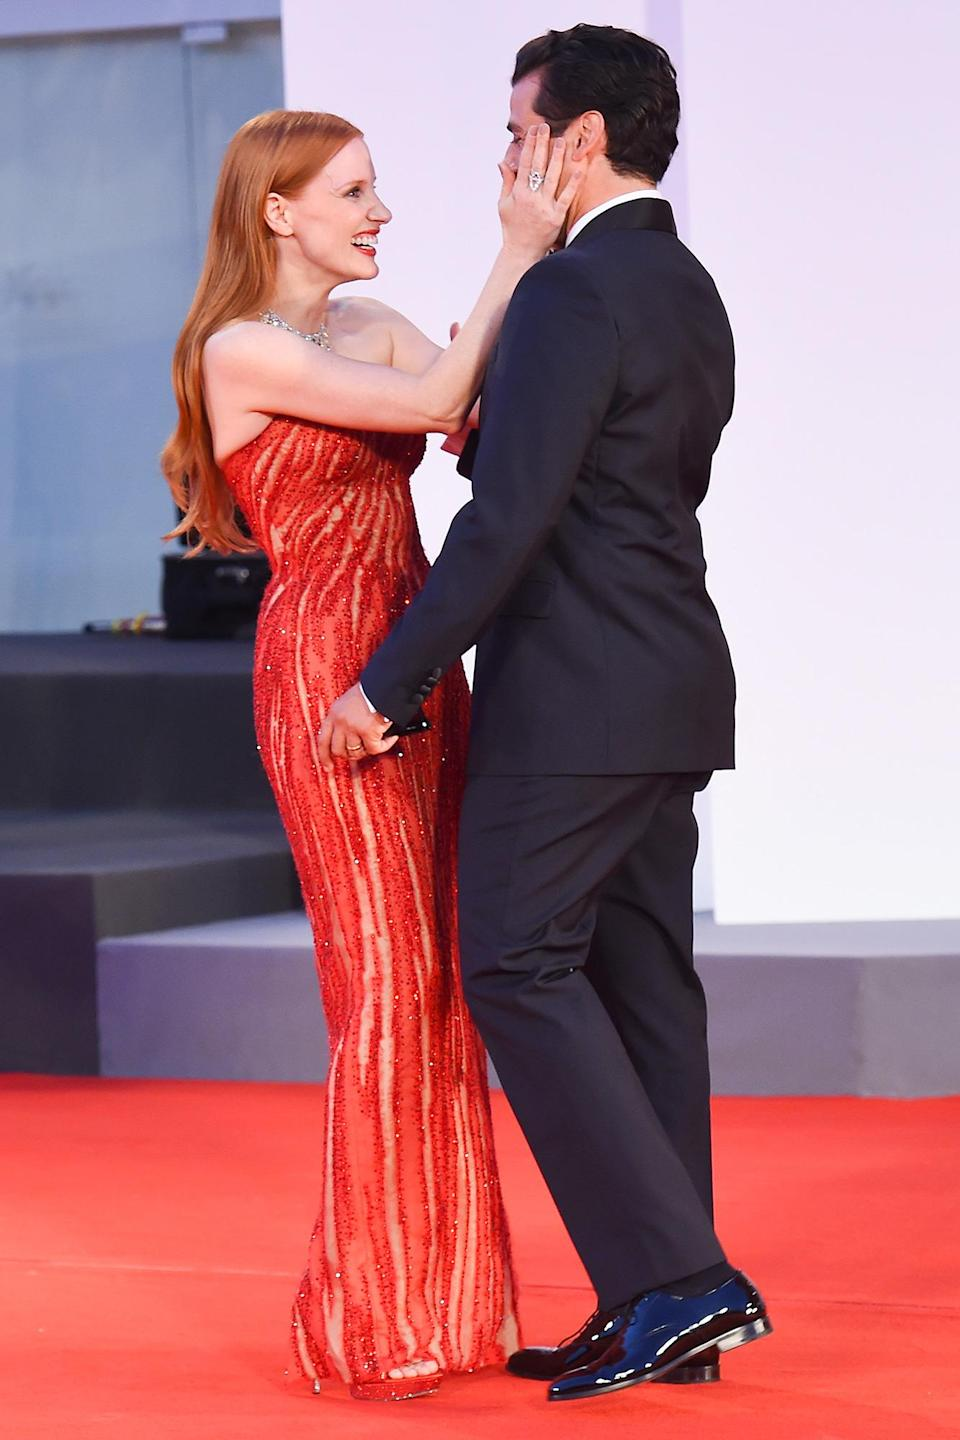 <p>No, there's nothing cheeky going on here, Isaac is married to screenwriter and director, Elvira Lind, and Chastain is married to fashion executive Gian Luca Passi de Preposulo.</p>